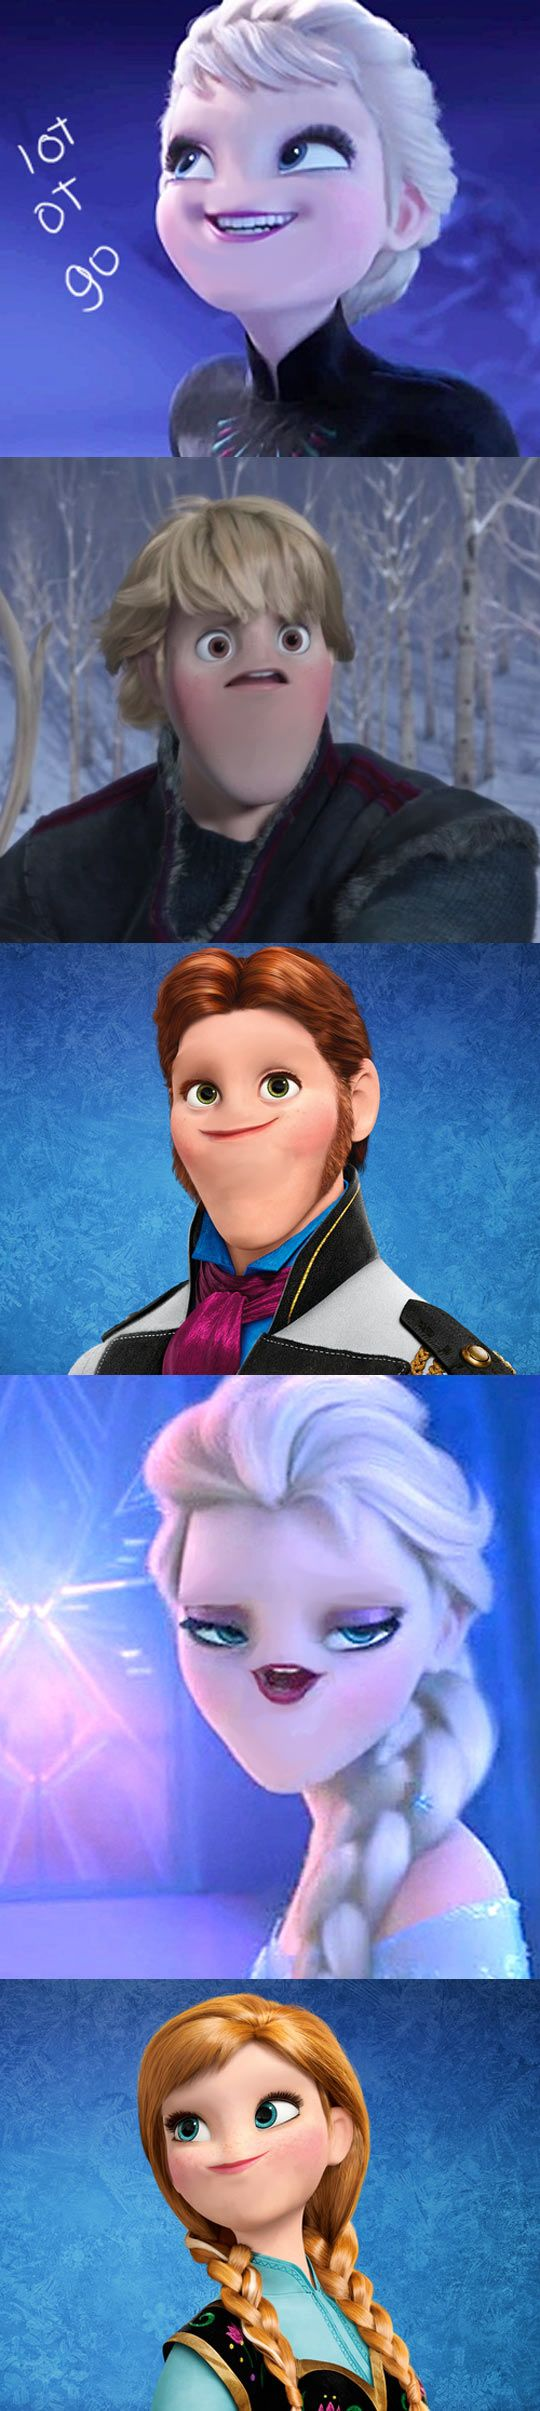 "The 'no nose' trend strikes again and leaves me helpless with giggling because Elsa looks like Cassandra. """"LET IT GO. LET IT GO! DON'T MOISTURIZE ME ANY MOOORRRE."""